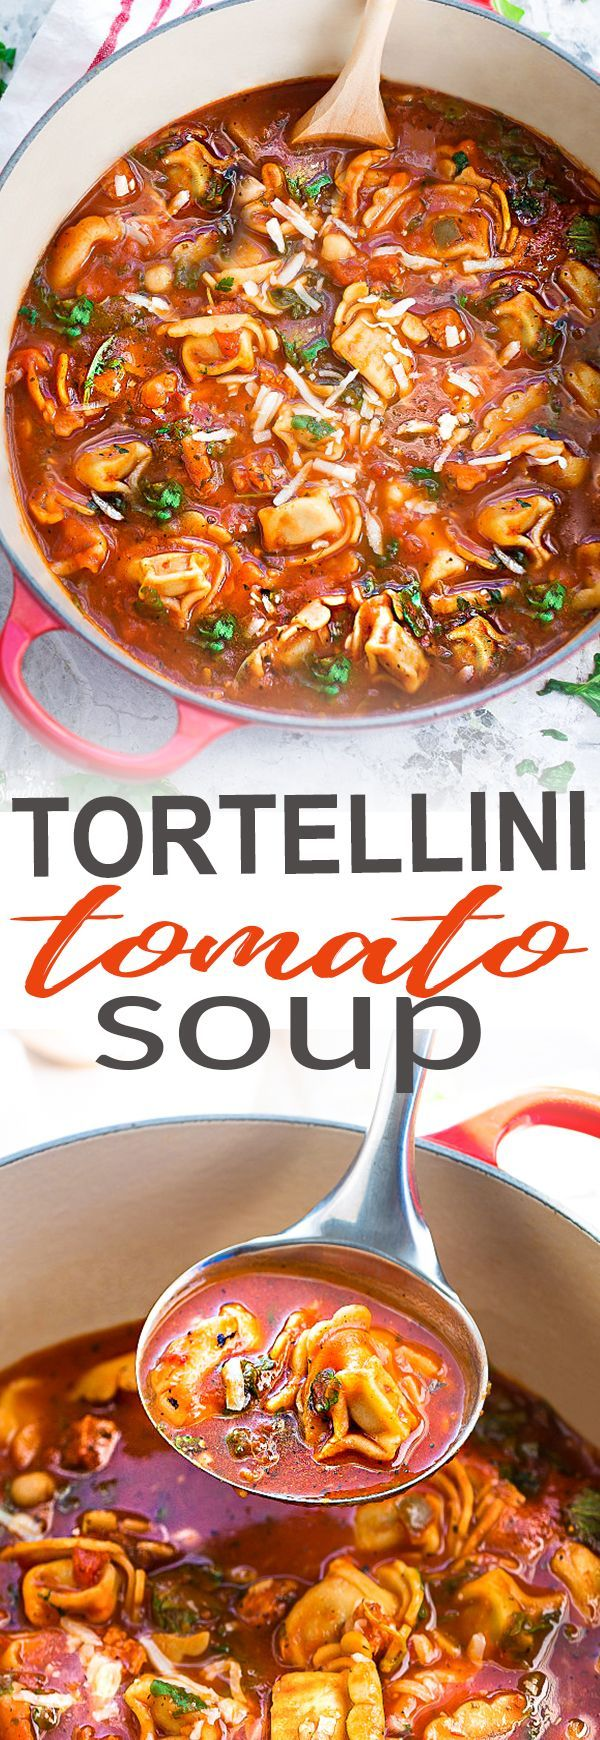 This delicious recipe for Italian Sausage Tortellini Tomato Soup is the perfect comforting soup for busy weeknights! Best of all, it's so easy to make and packed with with the most amazing flavors. Made with cheese tortellini, Italian sausage, arugula and